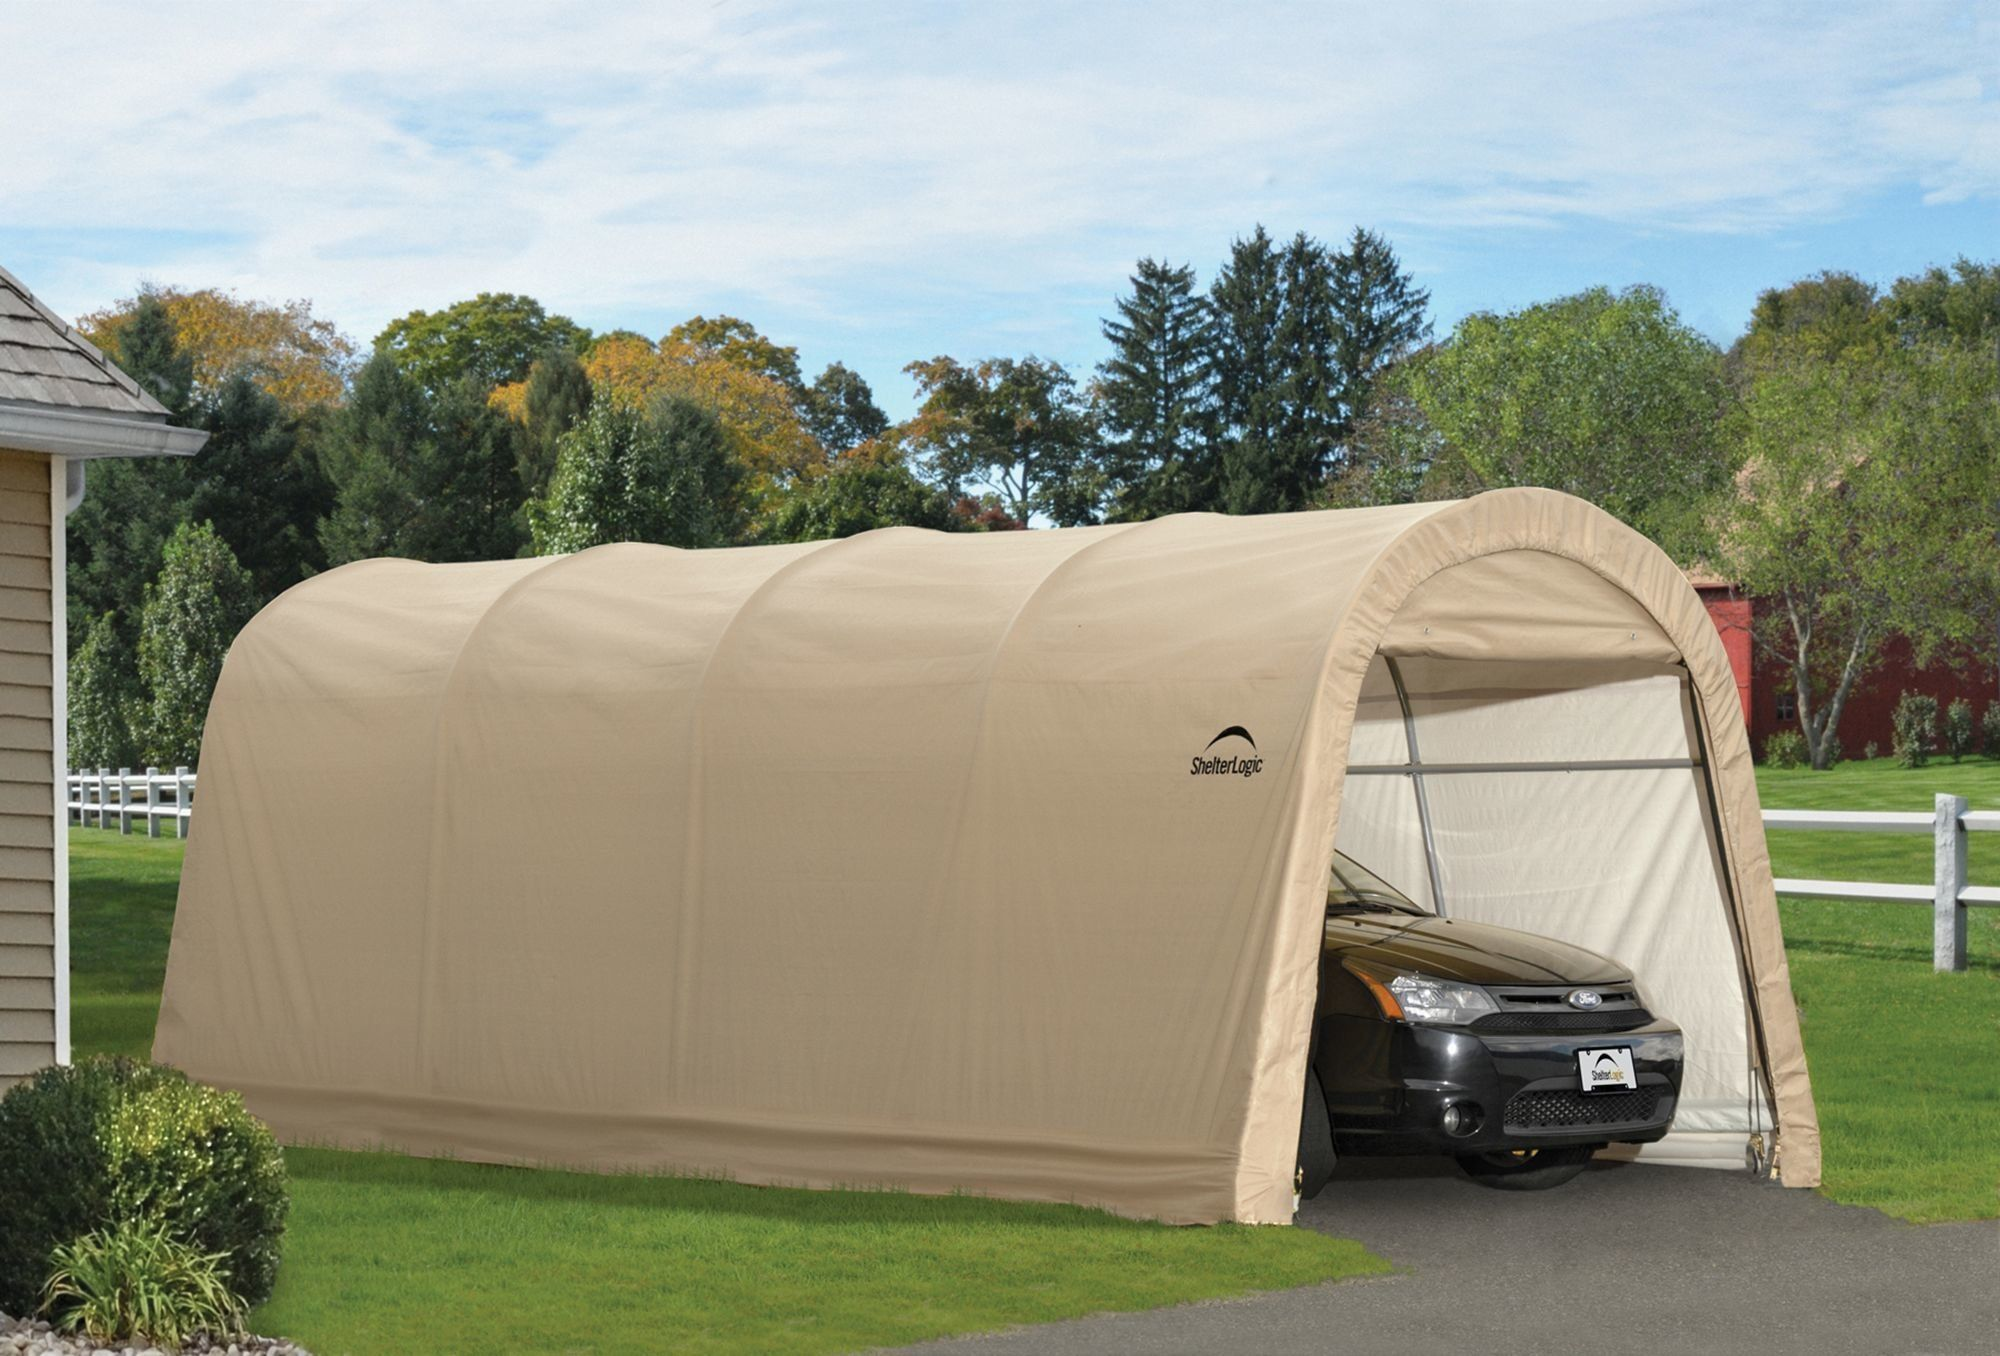 Garage Carport canopy, Instant garage, Portable carport